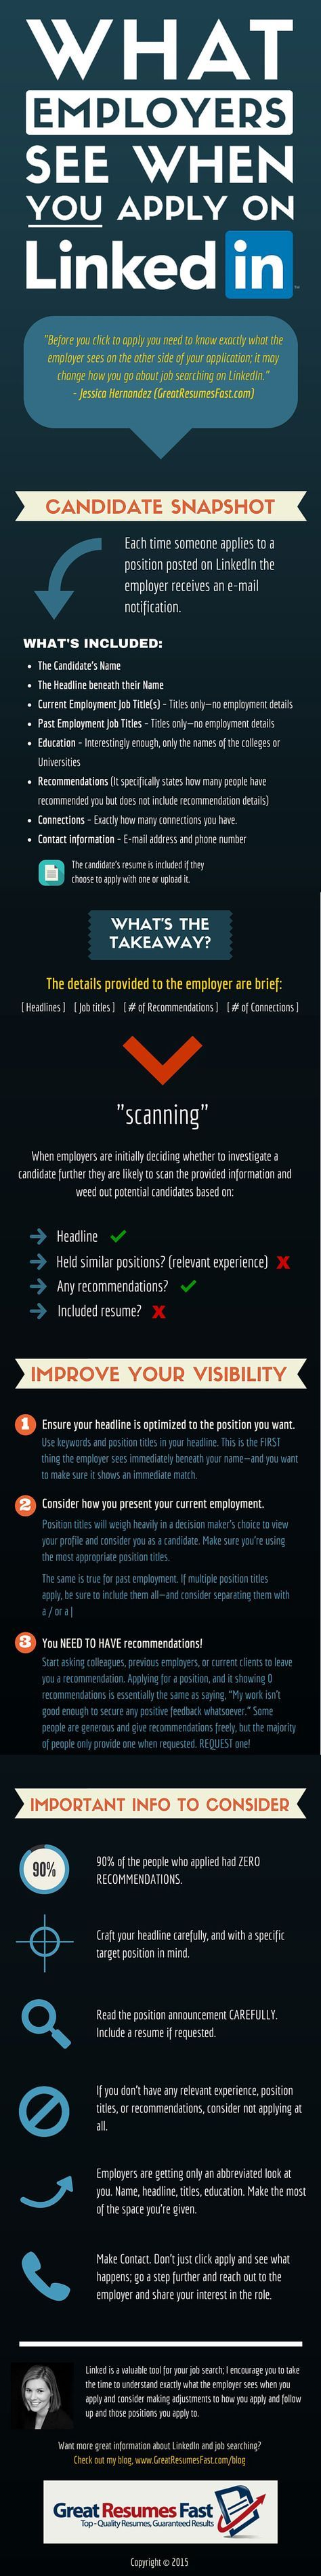 INFOGRAPHIC What Employers See When You Apply on LinkedIn